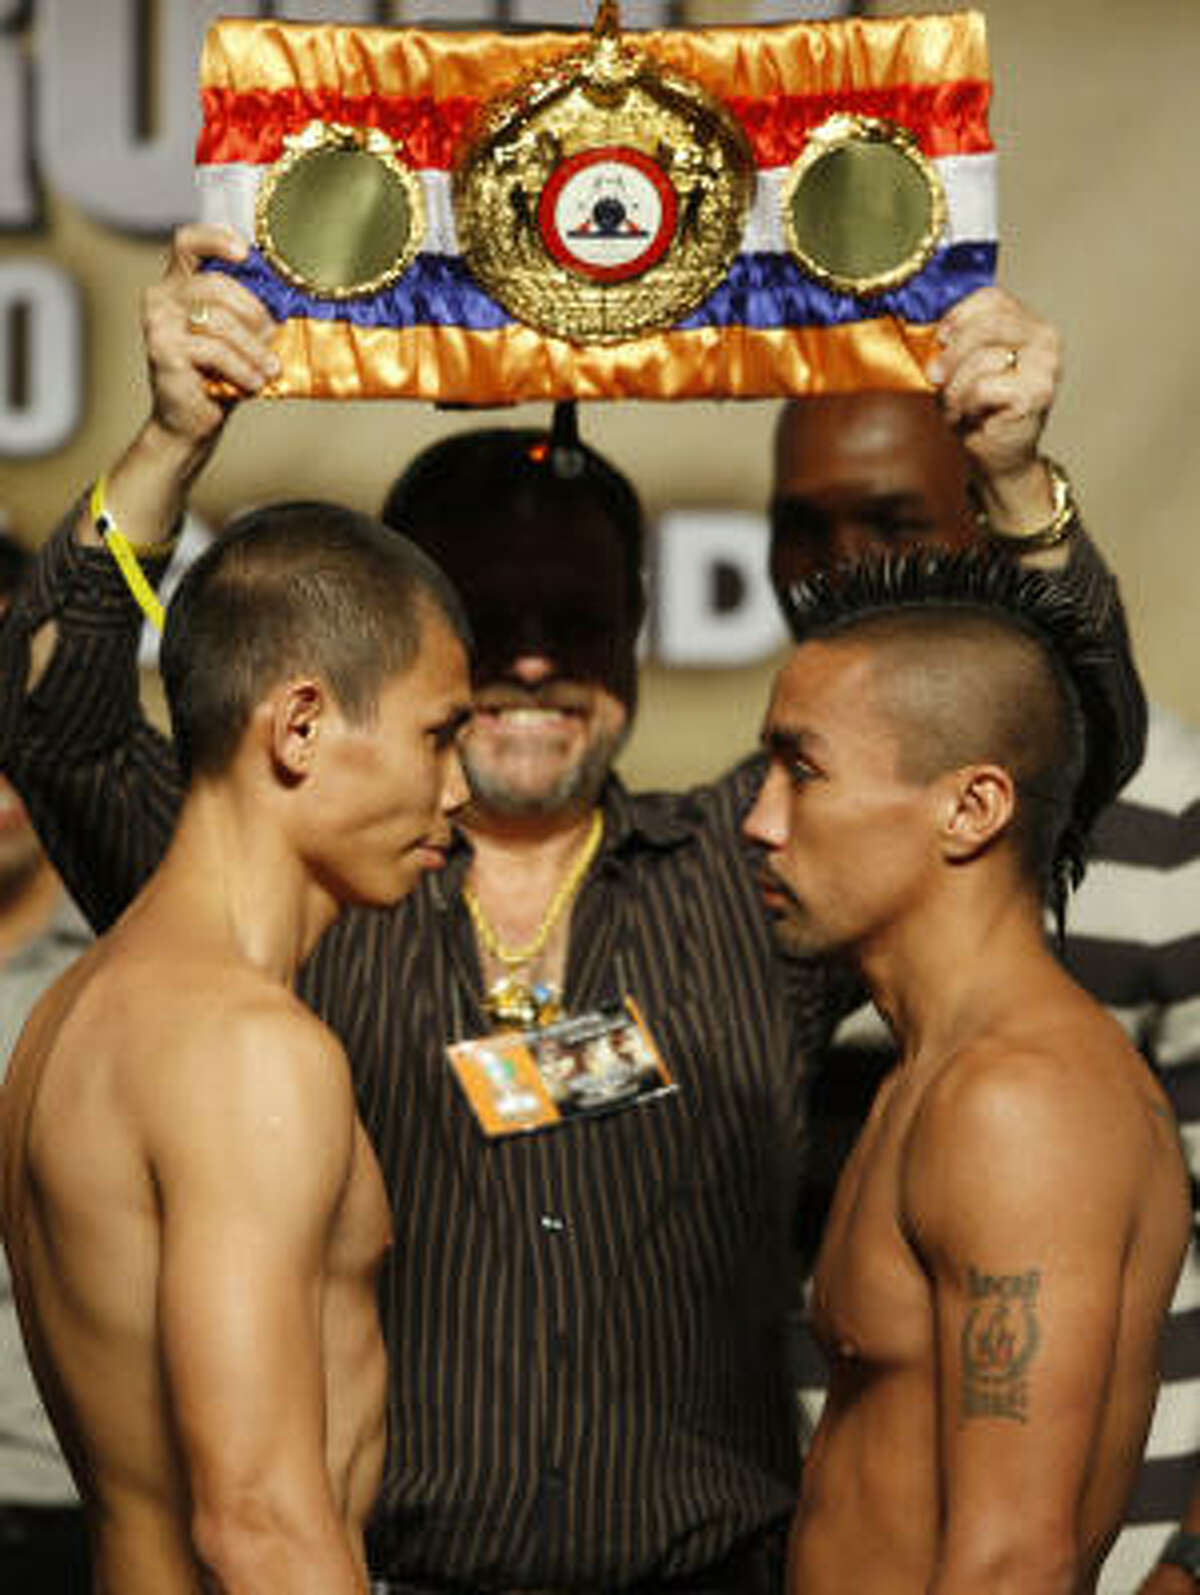 Houston's Rocky Juarez faces WBA featherweight champion Chris John, left, during their official weigh-in for a Saturday fight. For more on Juarez, click here.